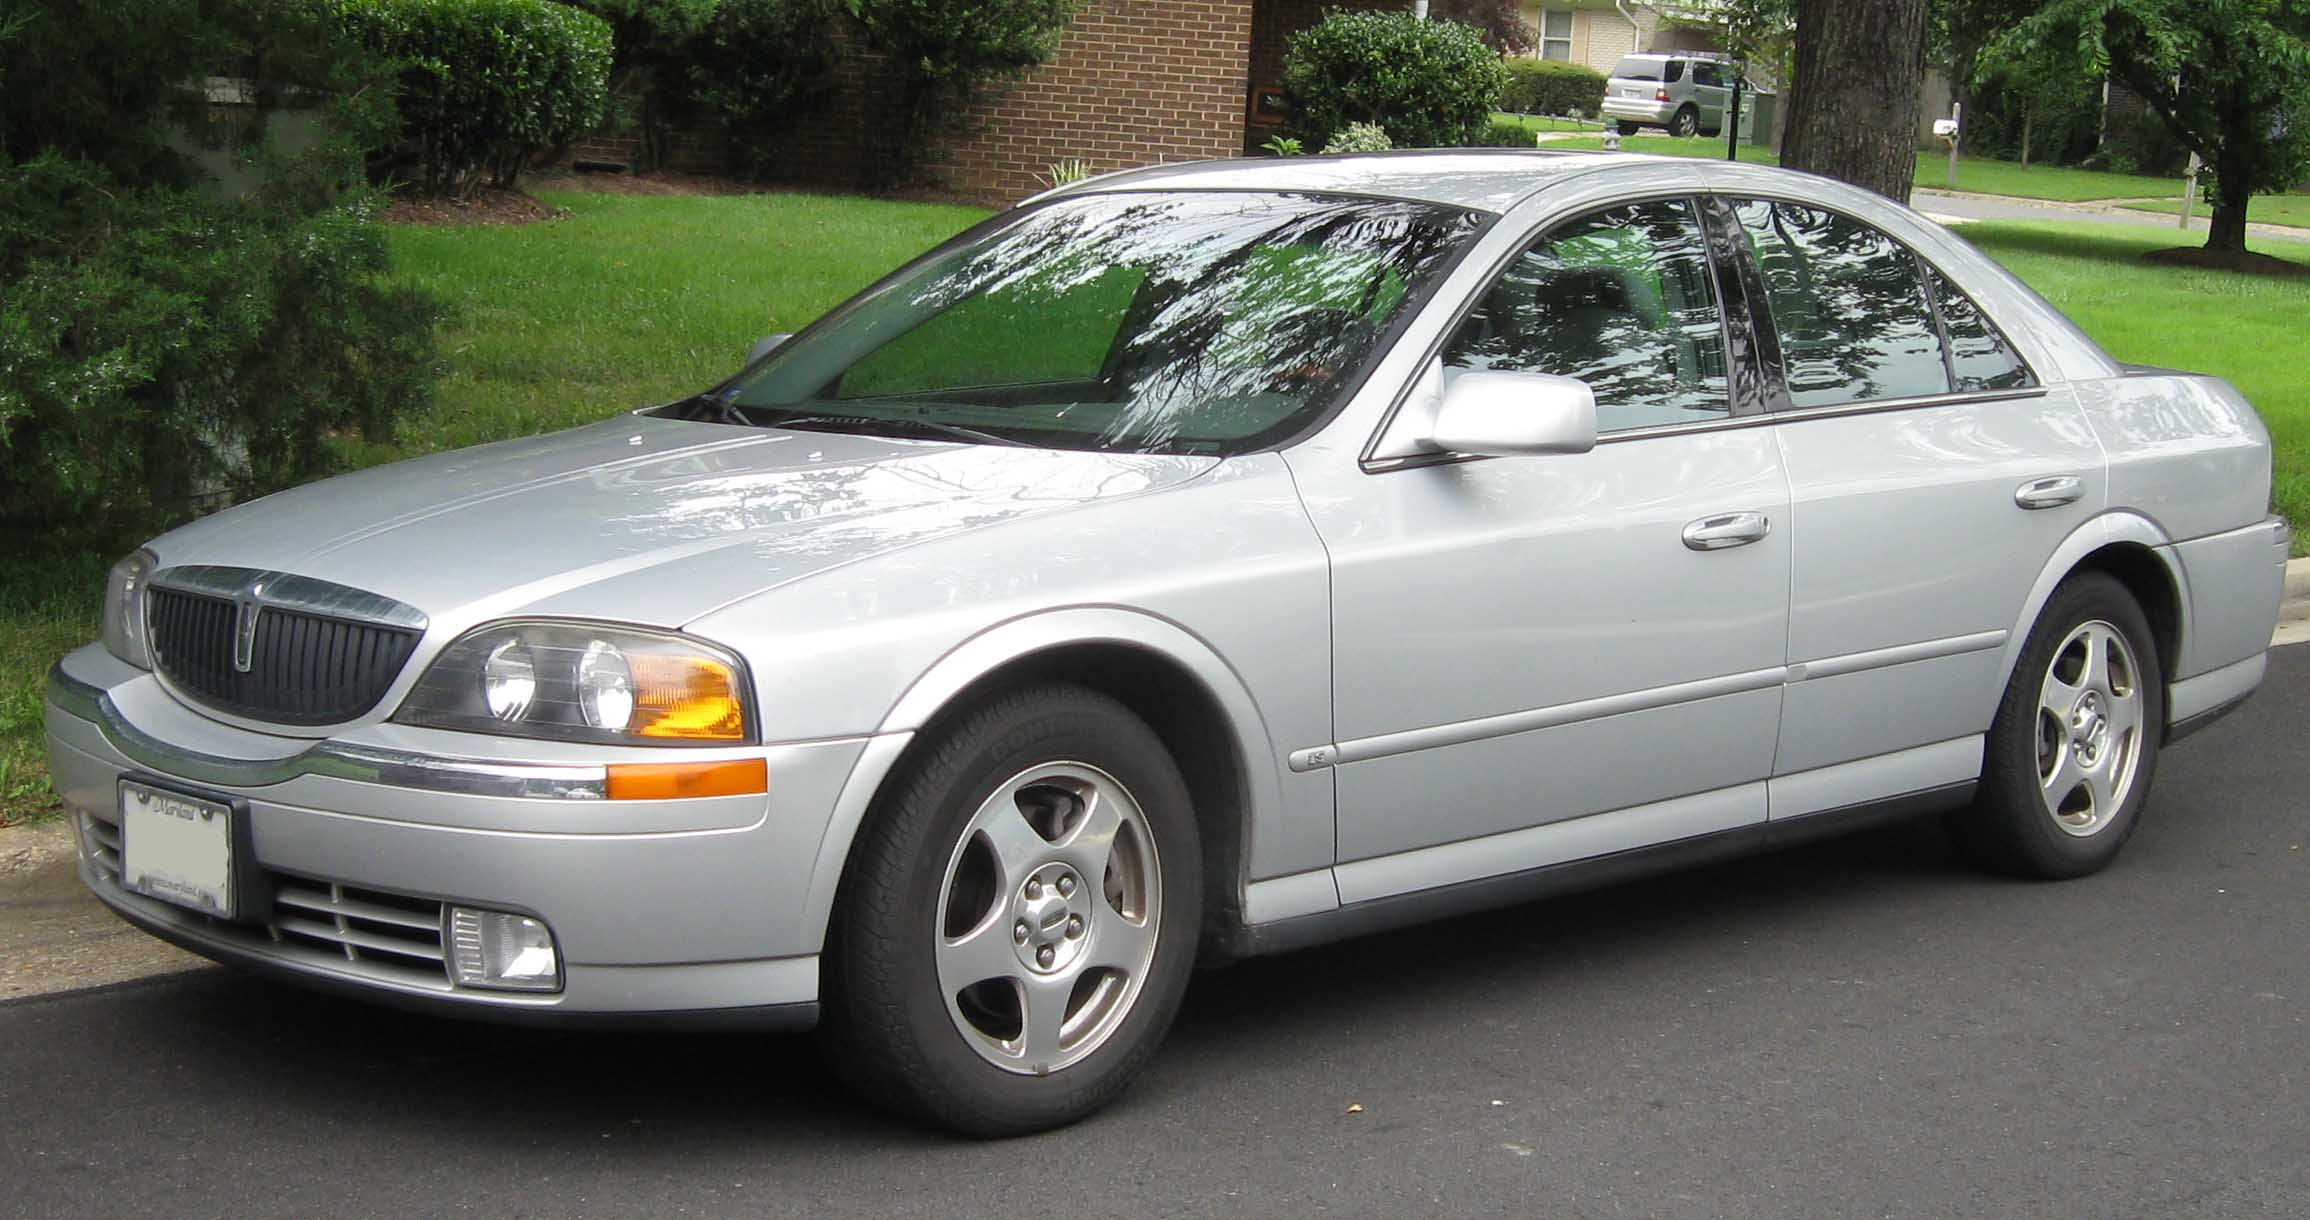 2003 Lincoln Ls #3